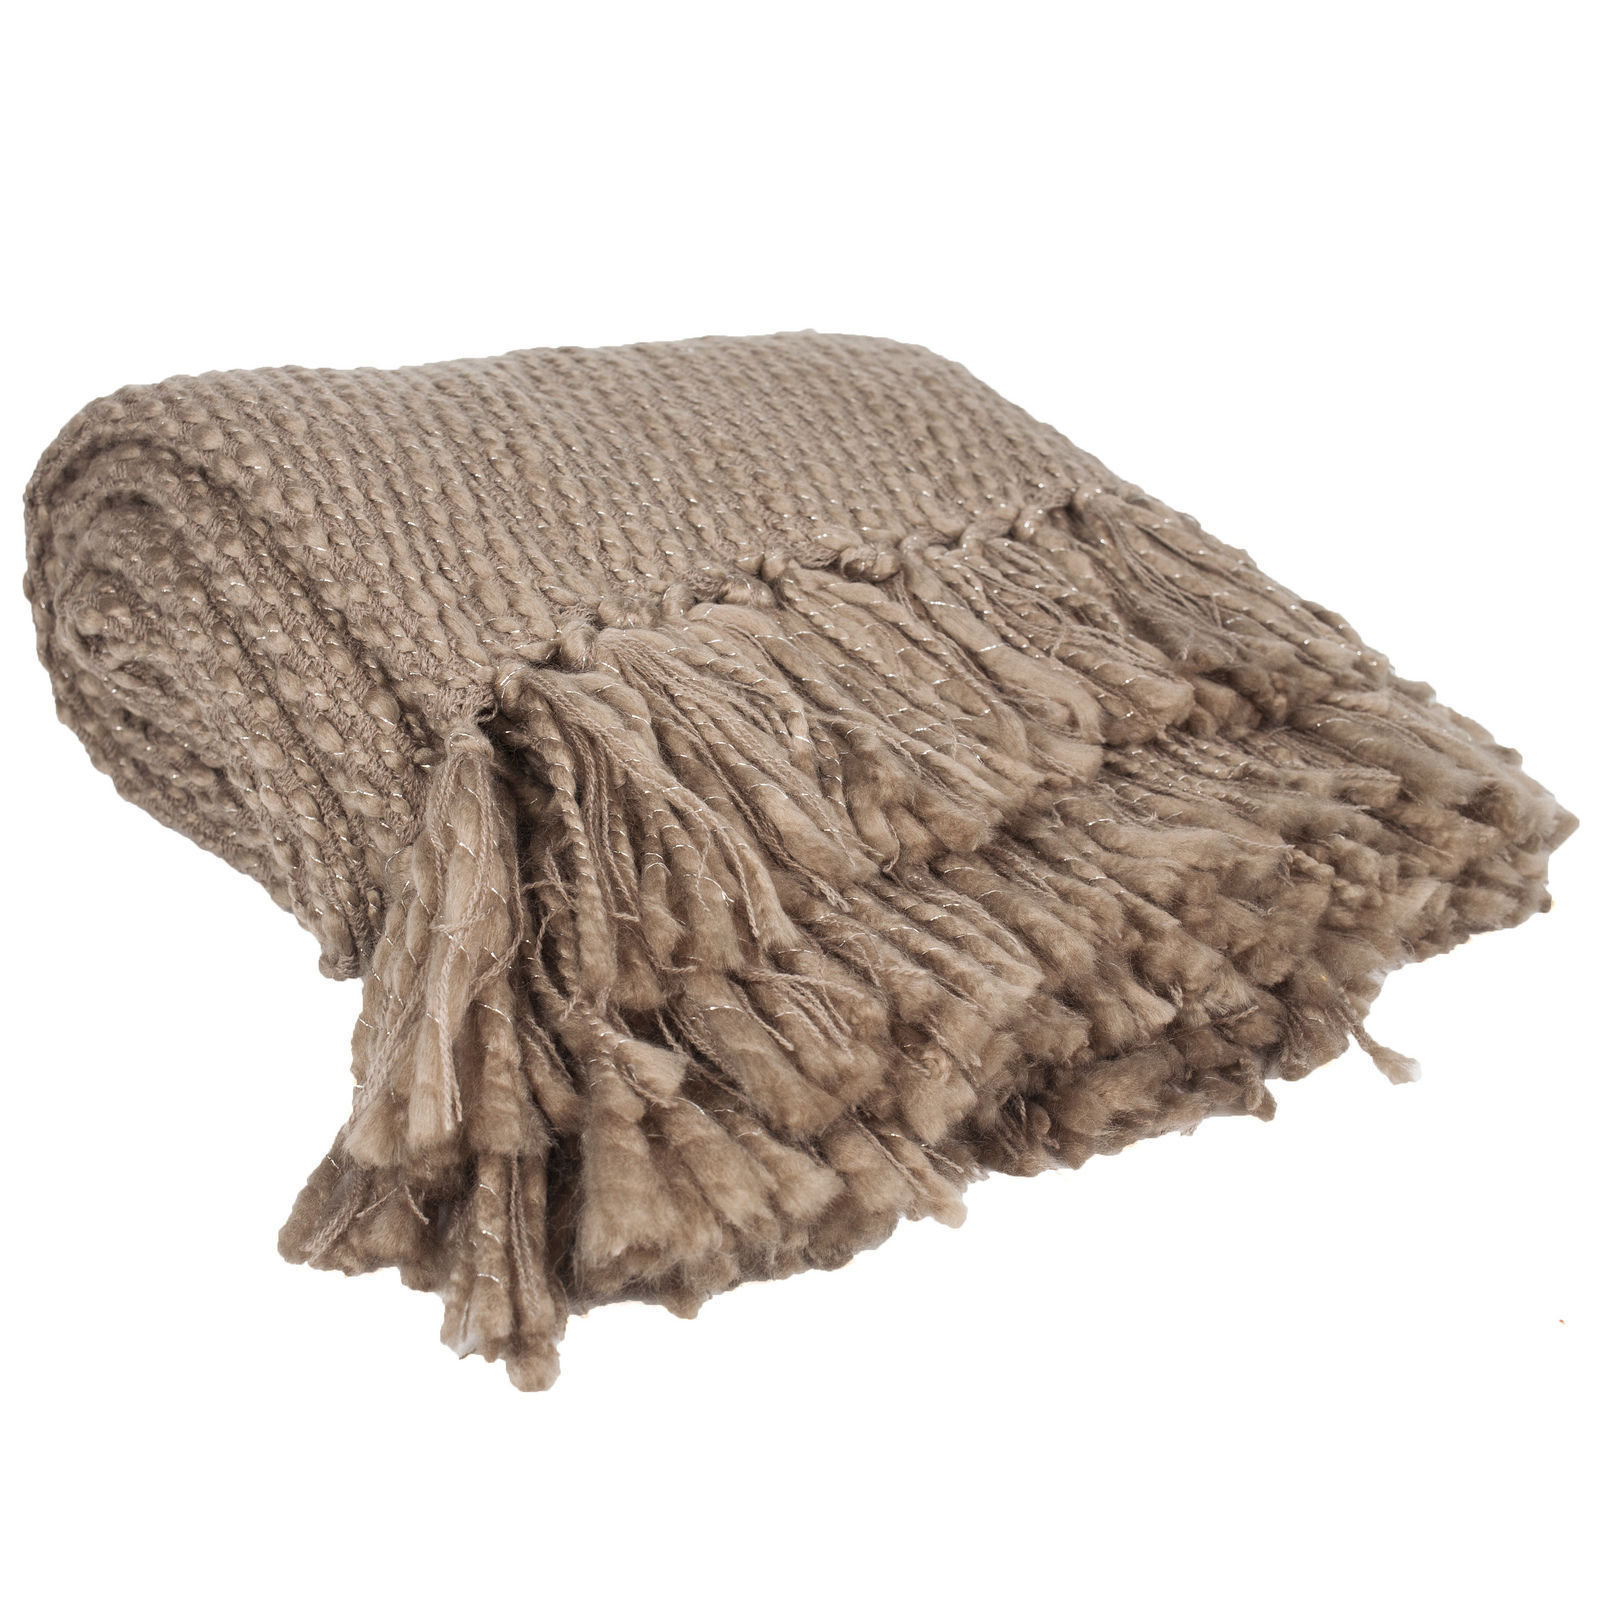 Russet Brown Knit Throw Blanket